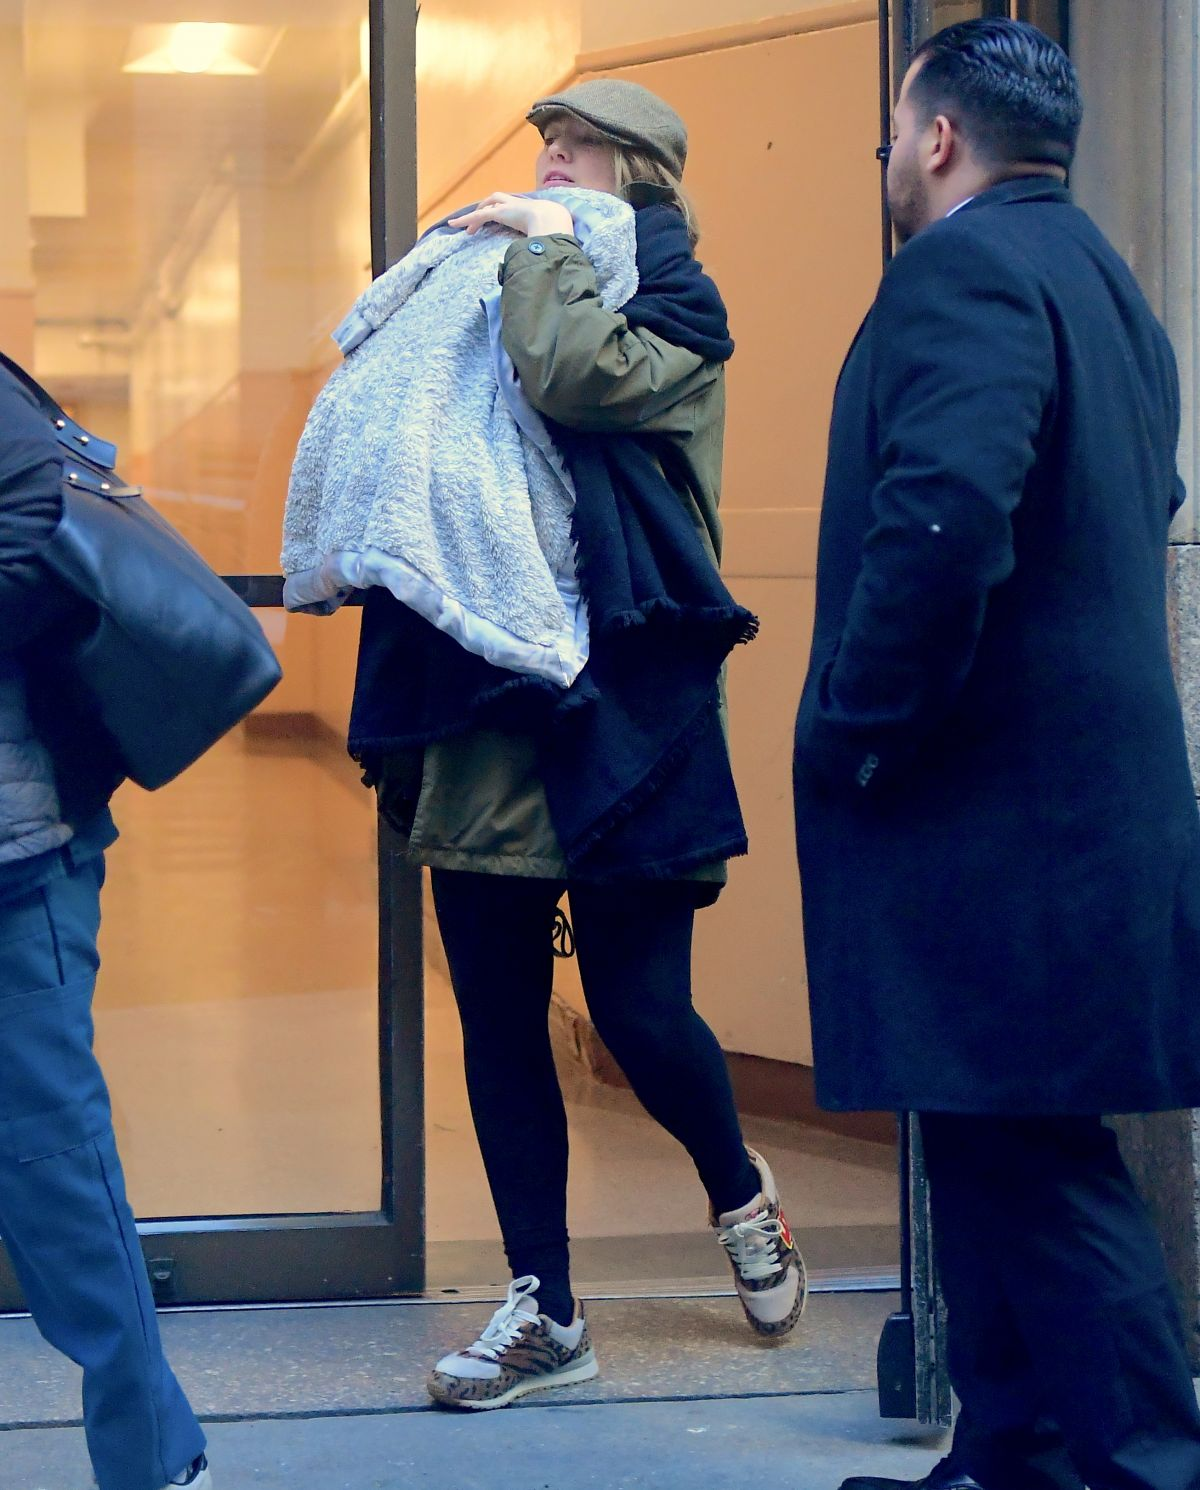 Blake Lively Seen with her newborn baby girl out for ...